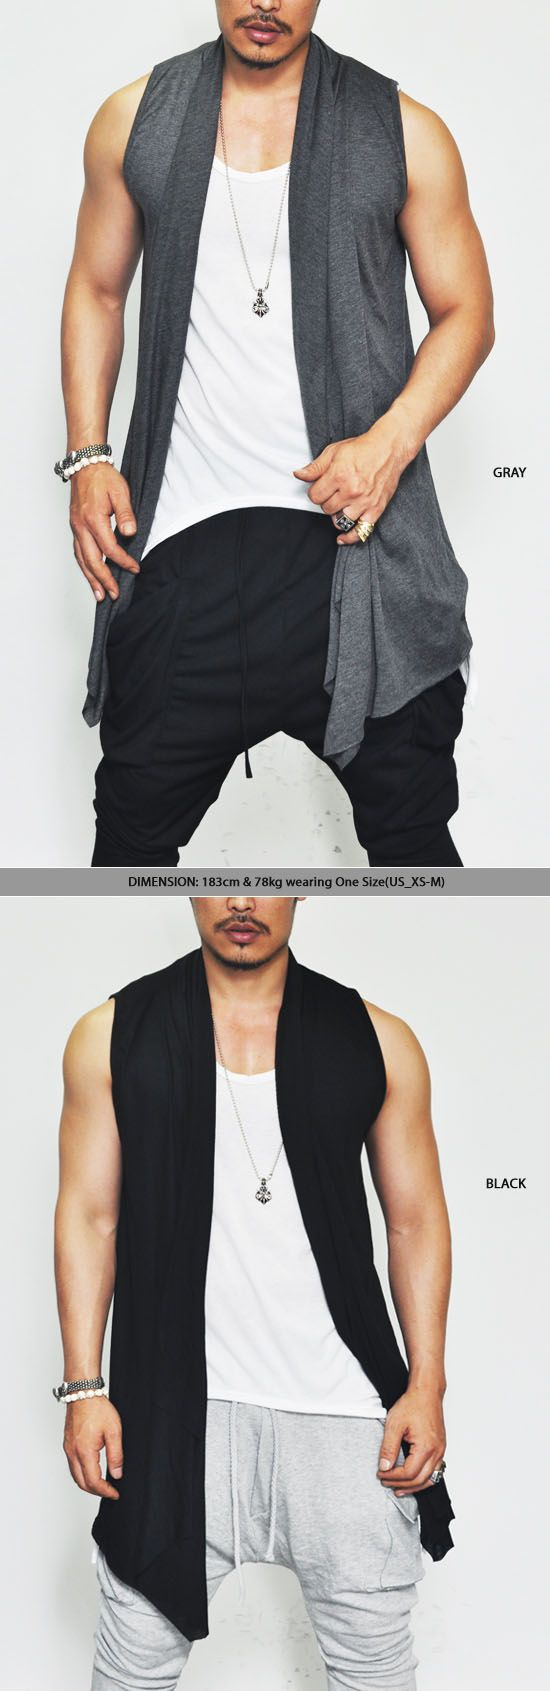 Outerwear :: Ruffle Shawl Cutoff Shirring Cardigan Vest-Vest 59 - Mens Fashion Clothing For An Attractive Guy Look